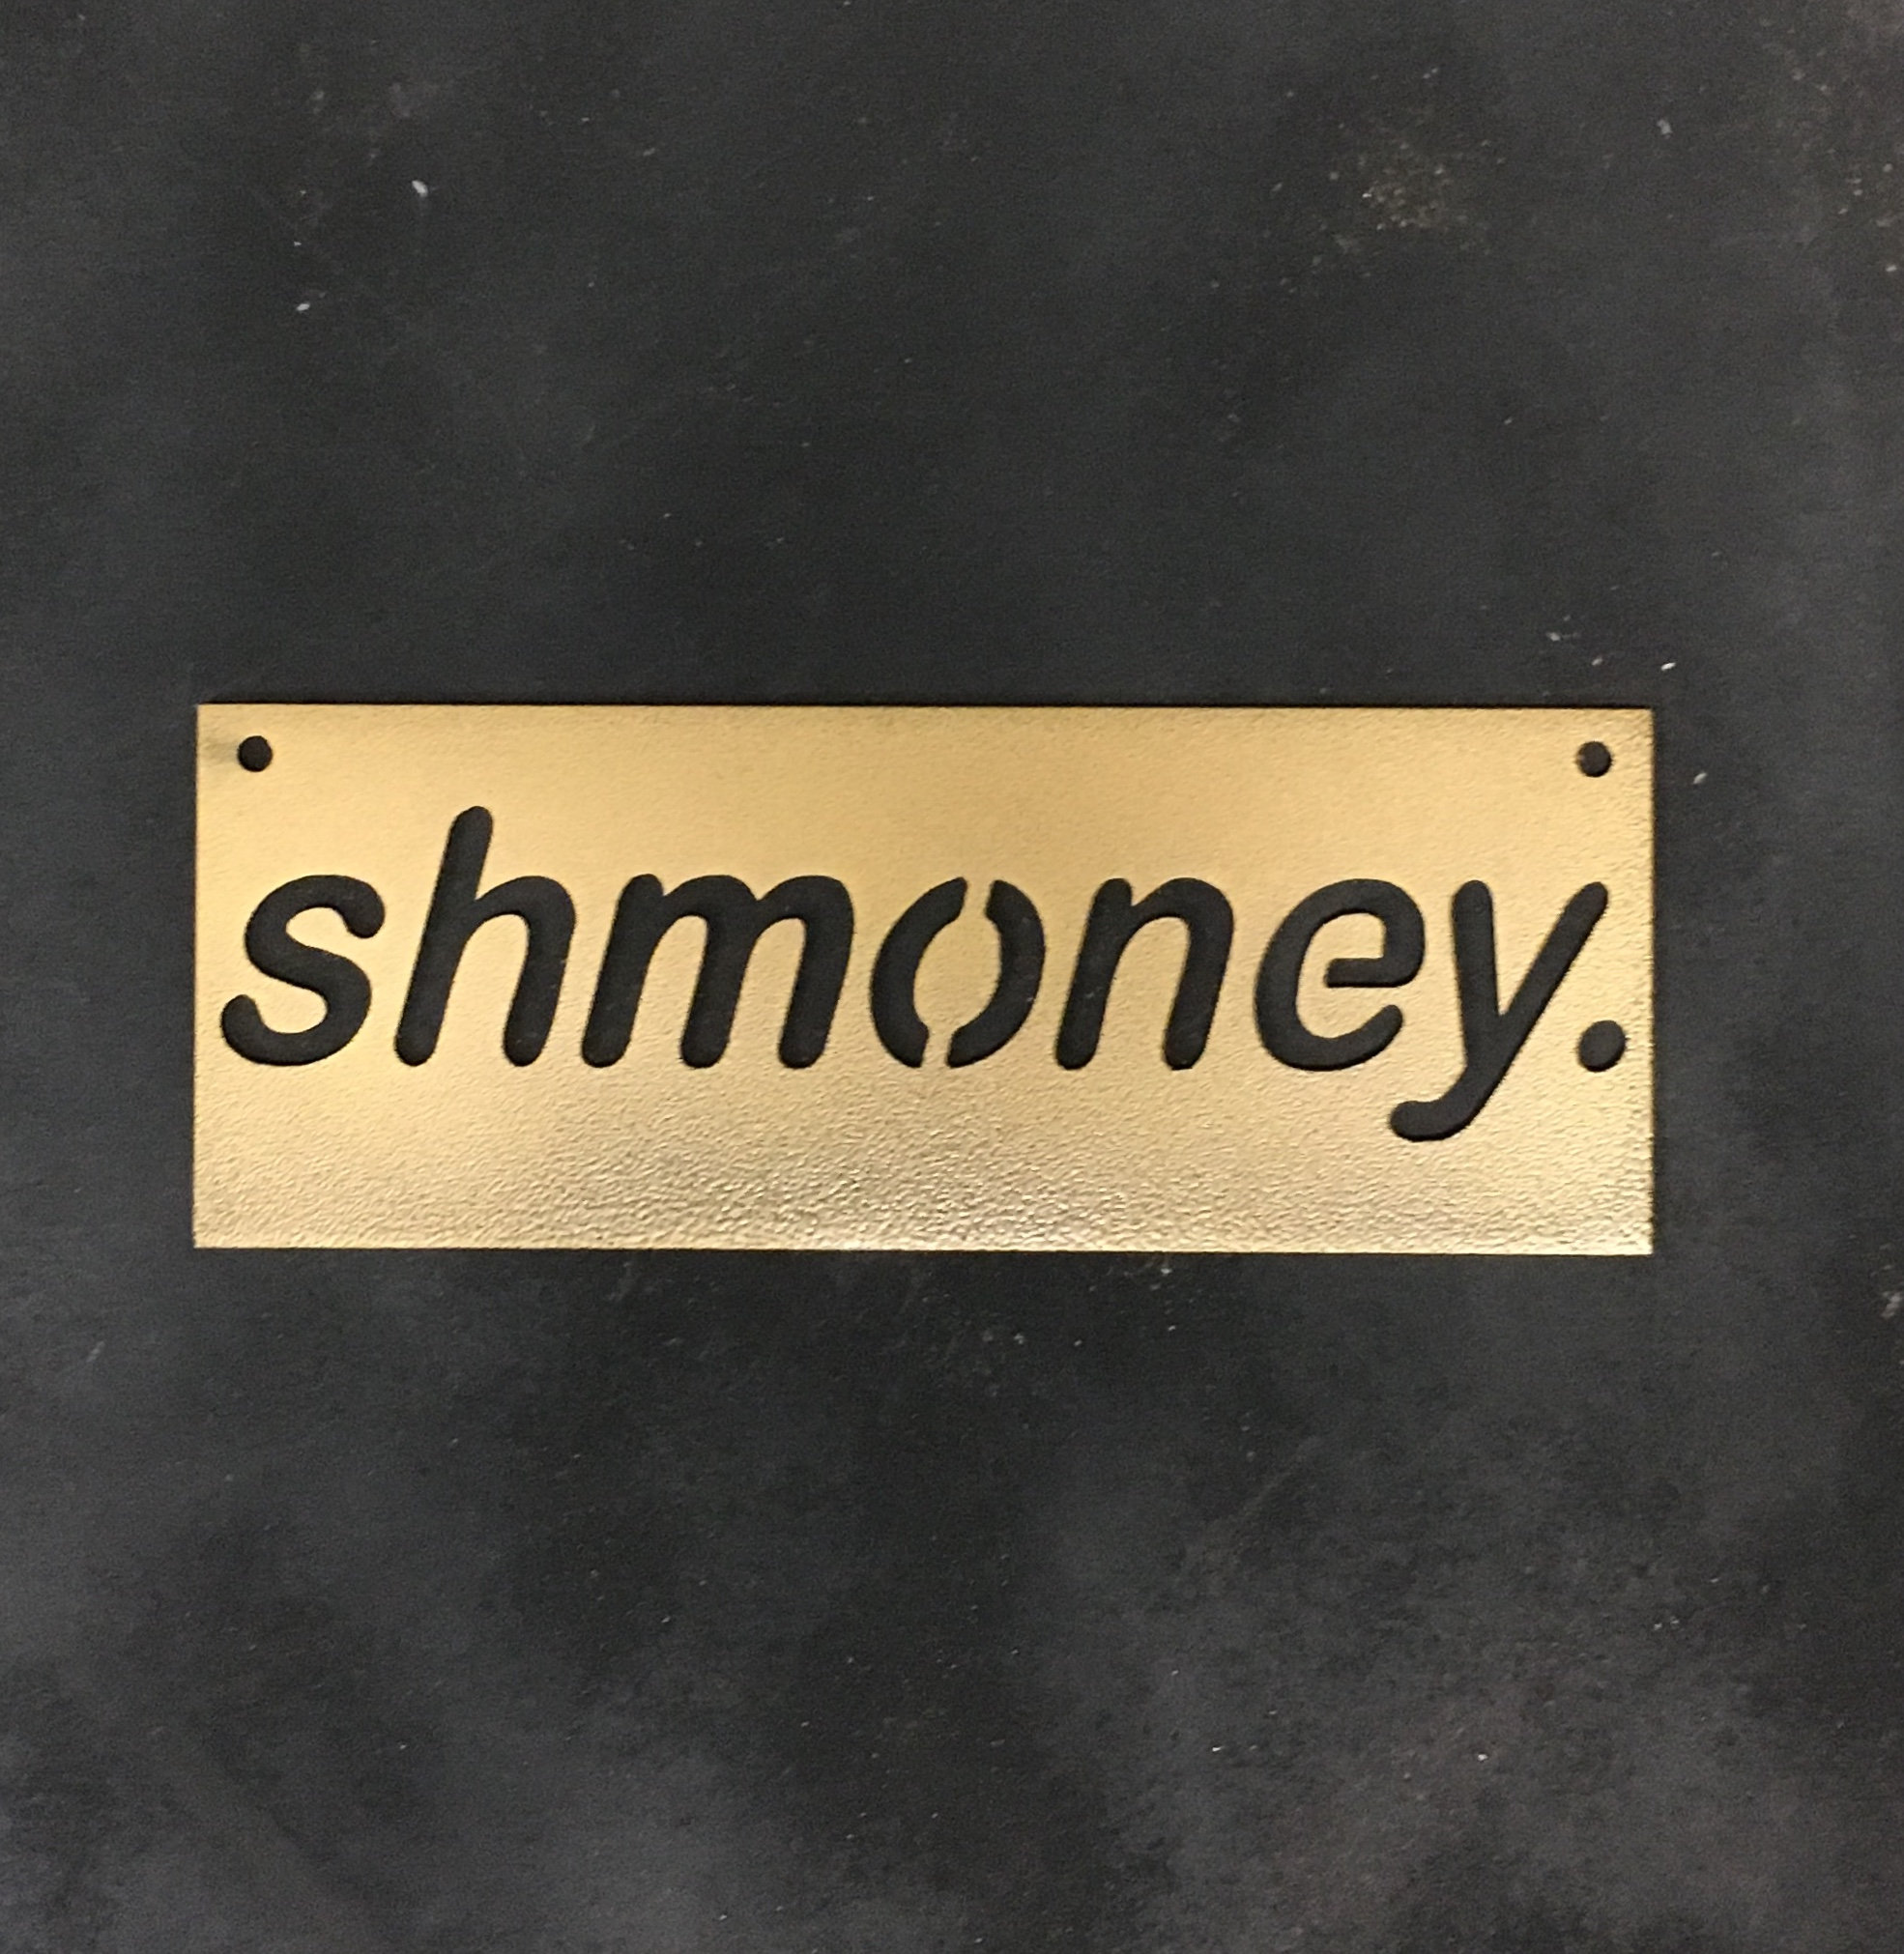 Shmoney Quotes Metal signs Home decor Metal wall art